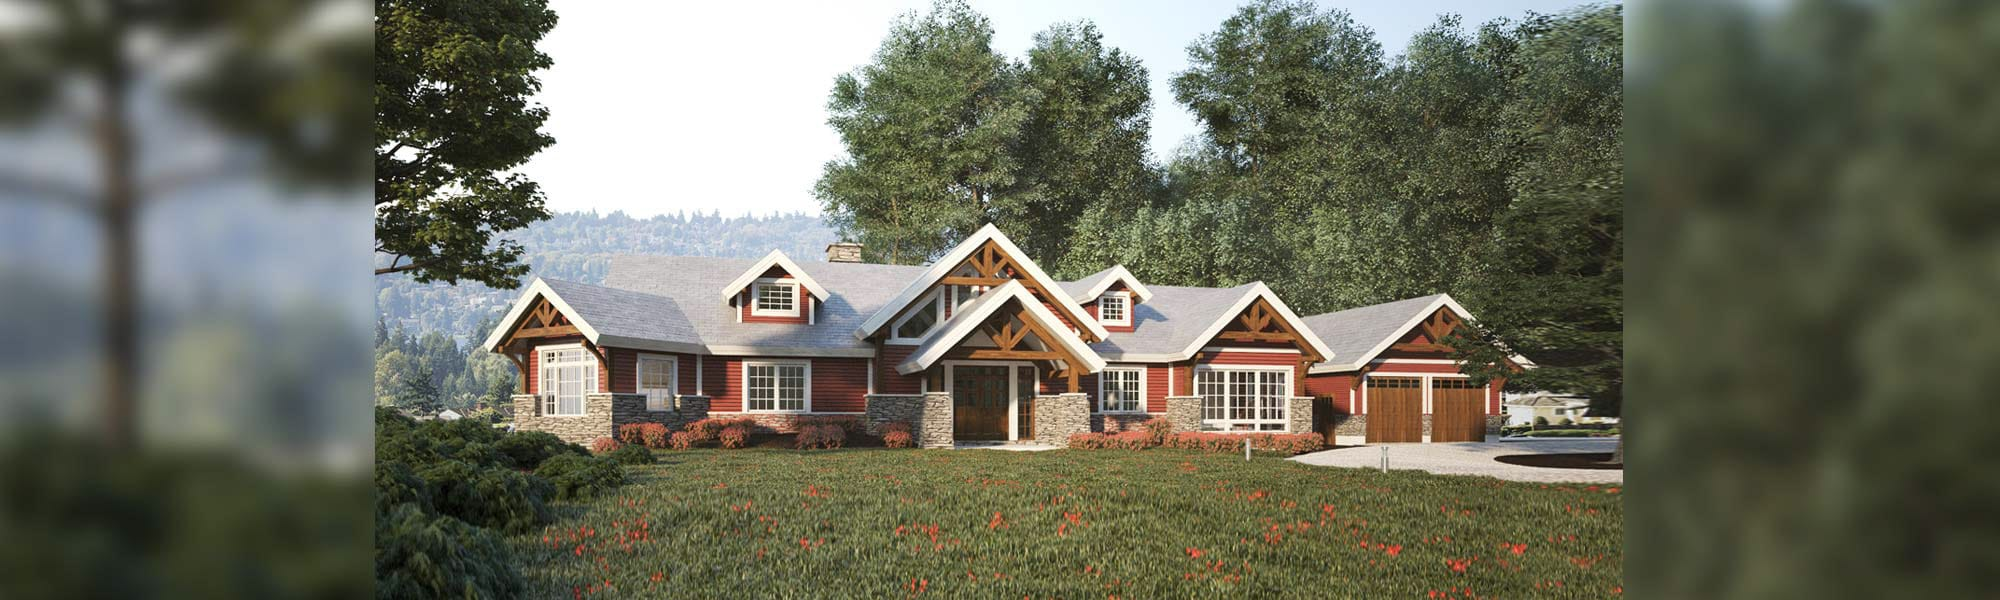 Pheasant Ridge floor plan design